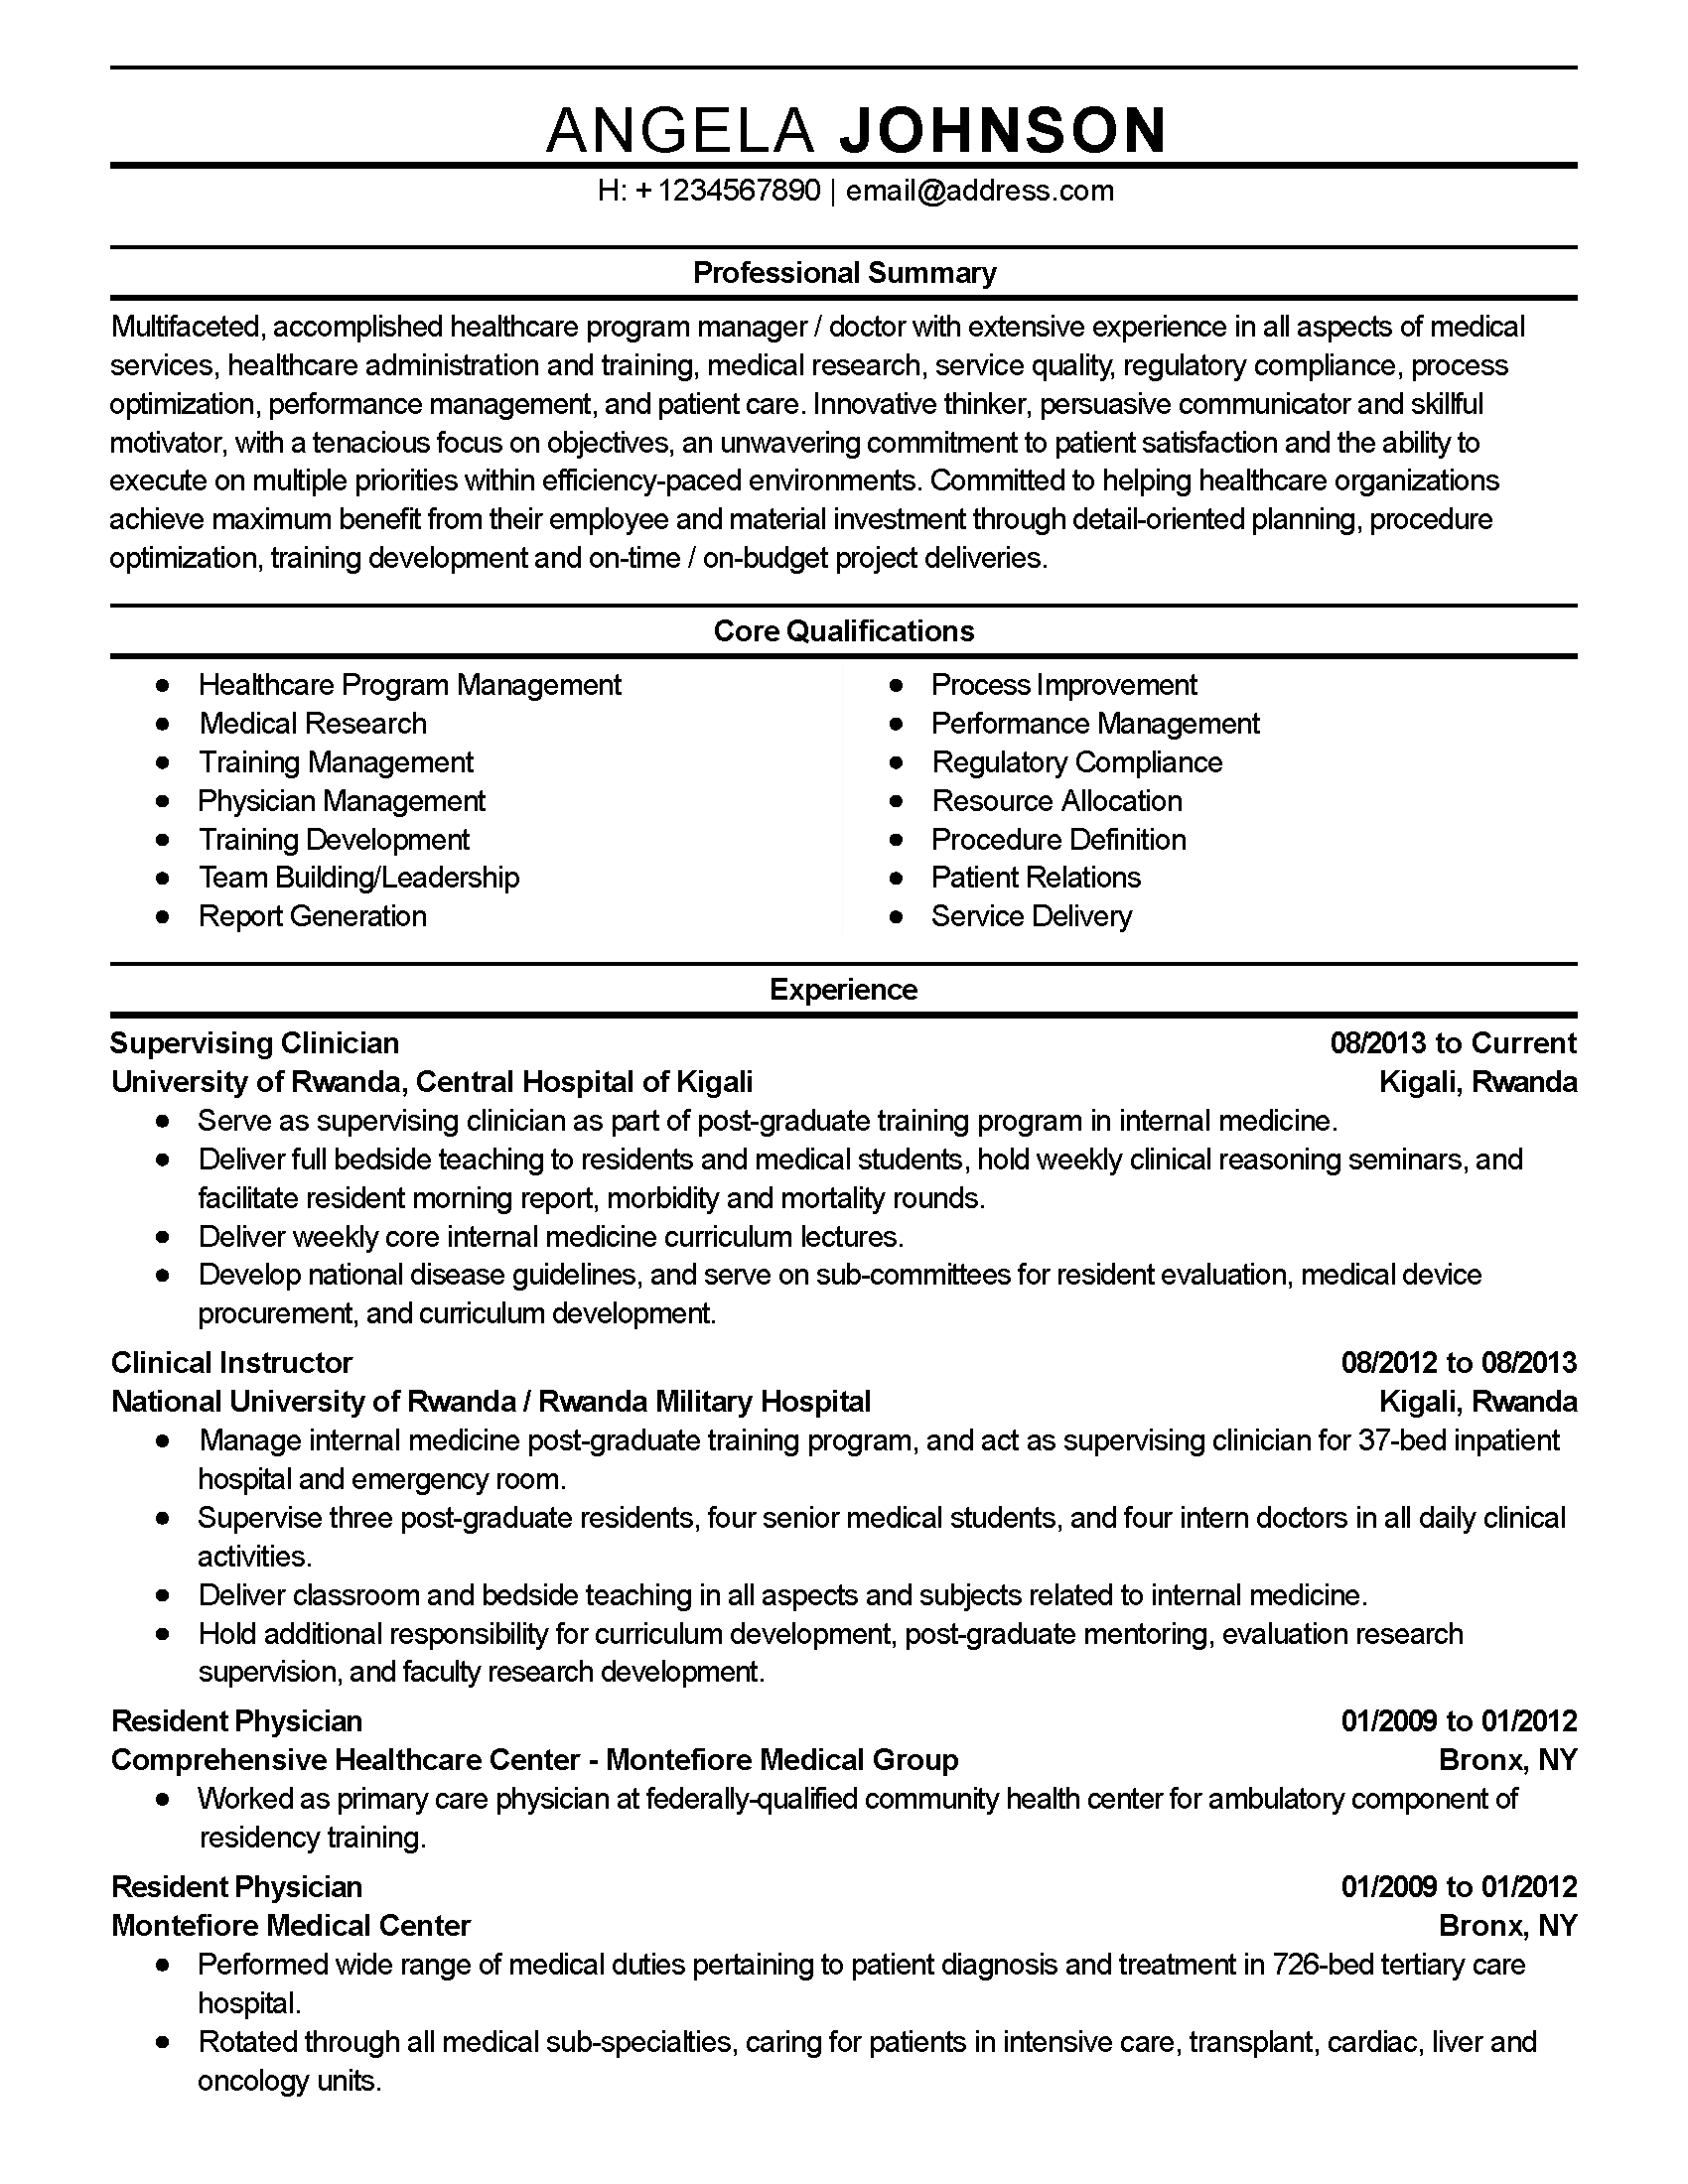 Program Management Resume Examples - Examples of Resumes